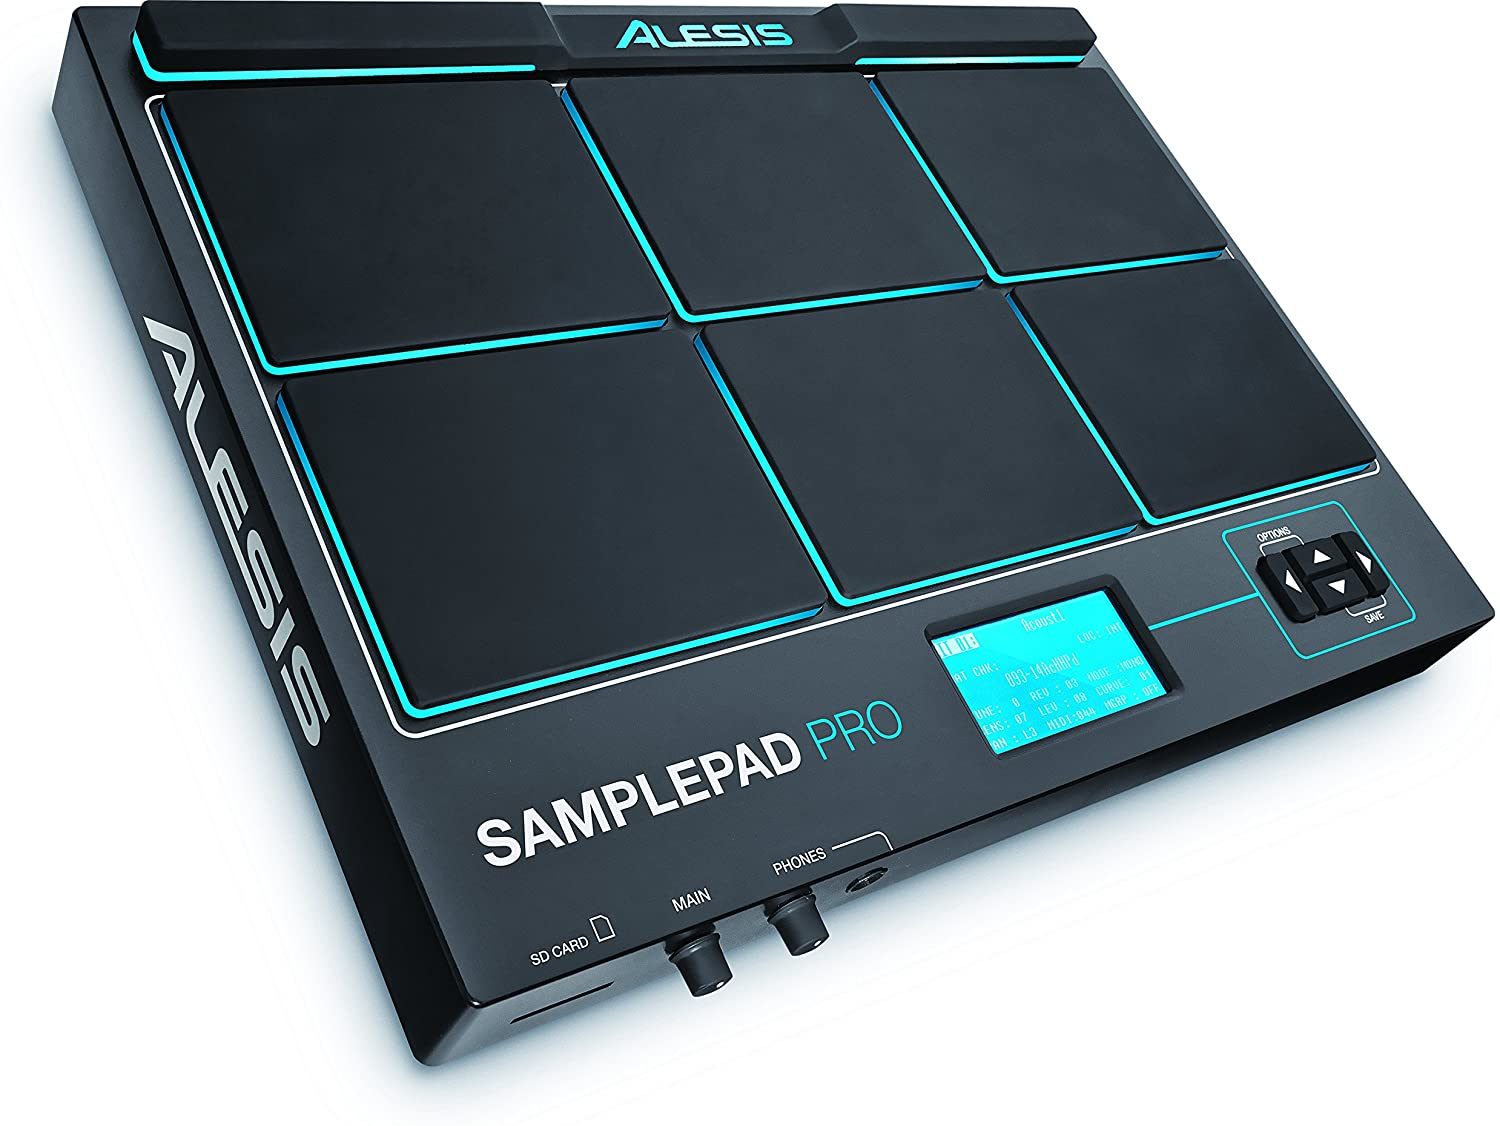 Alesis SamplePad Pro - The Best Affordable